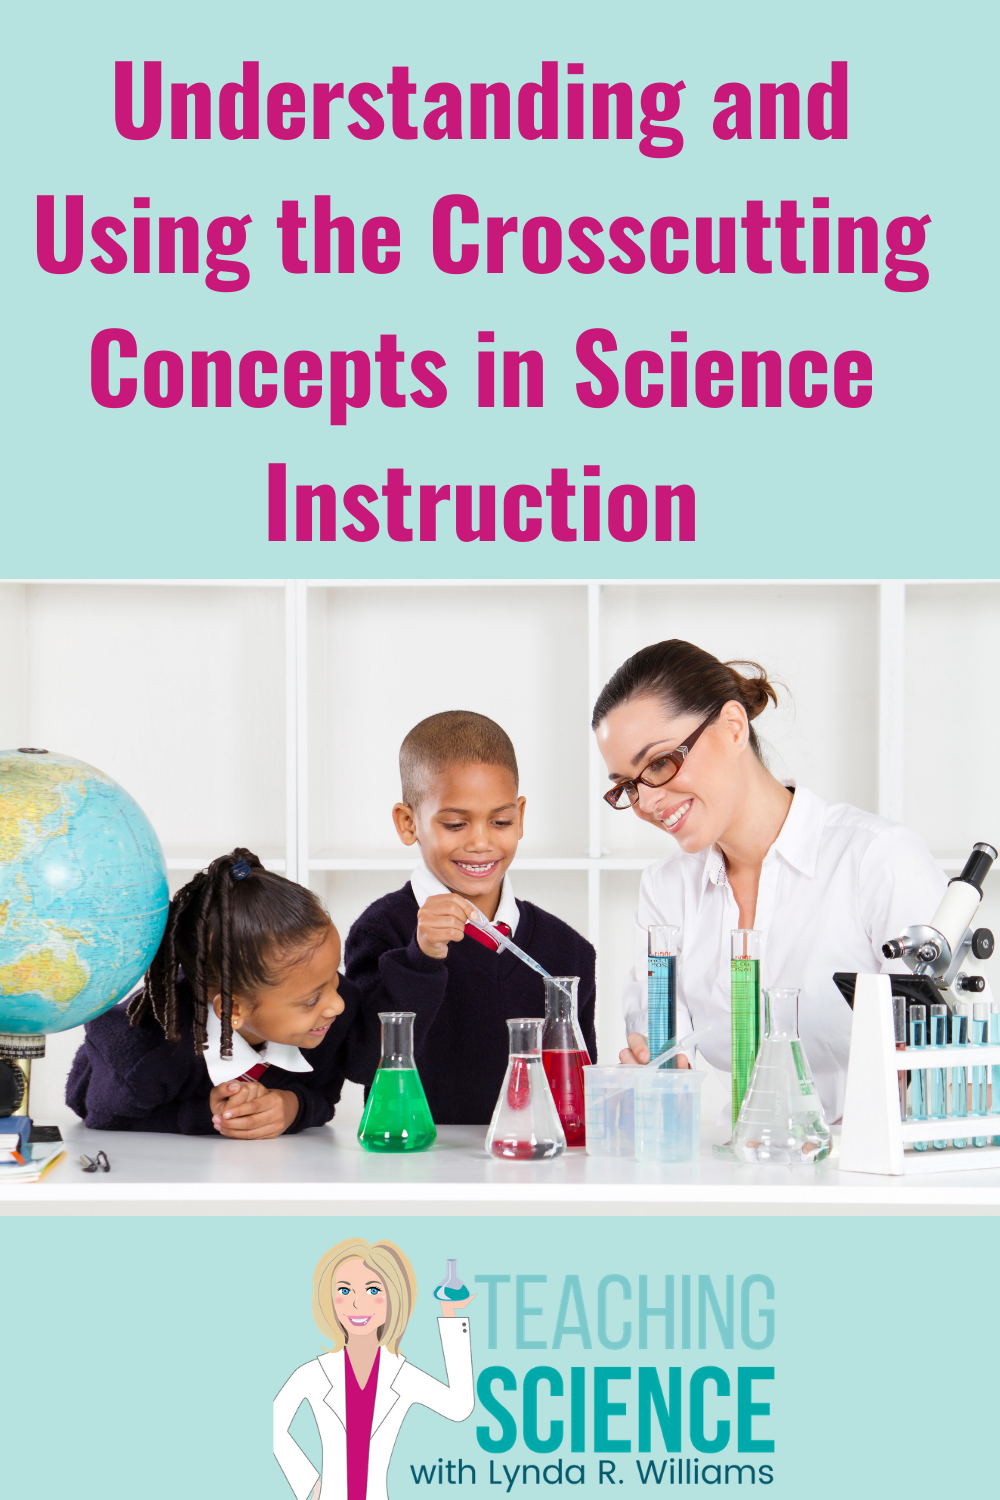 Understanding and Using the Crosscutting Concepts in Science Instruction